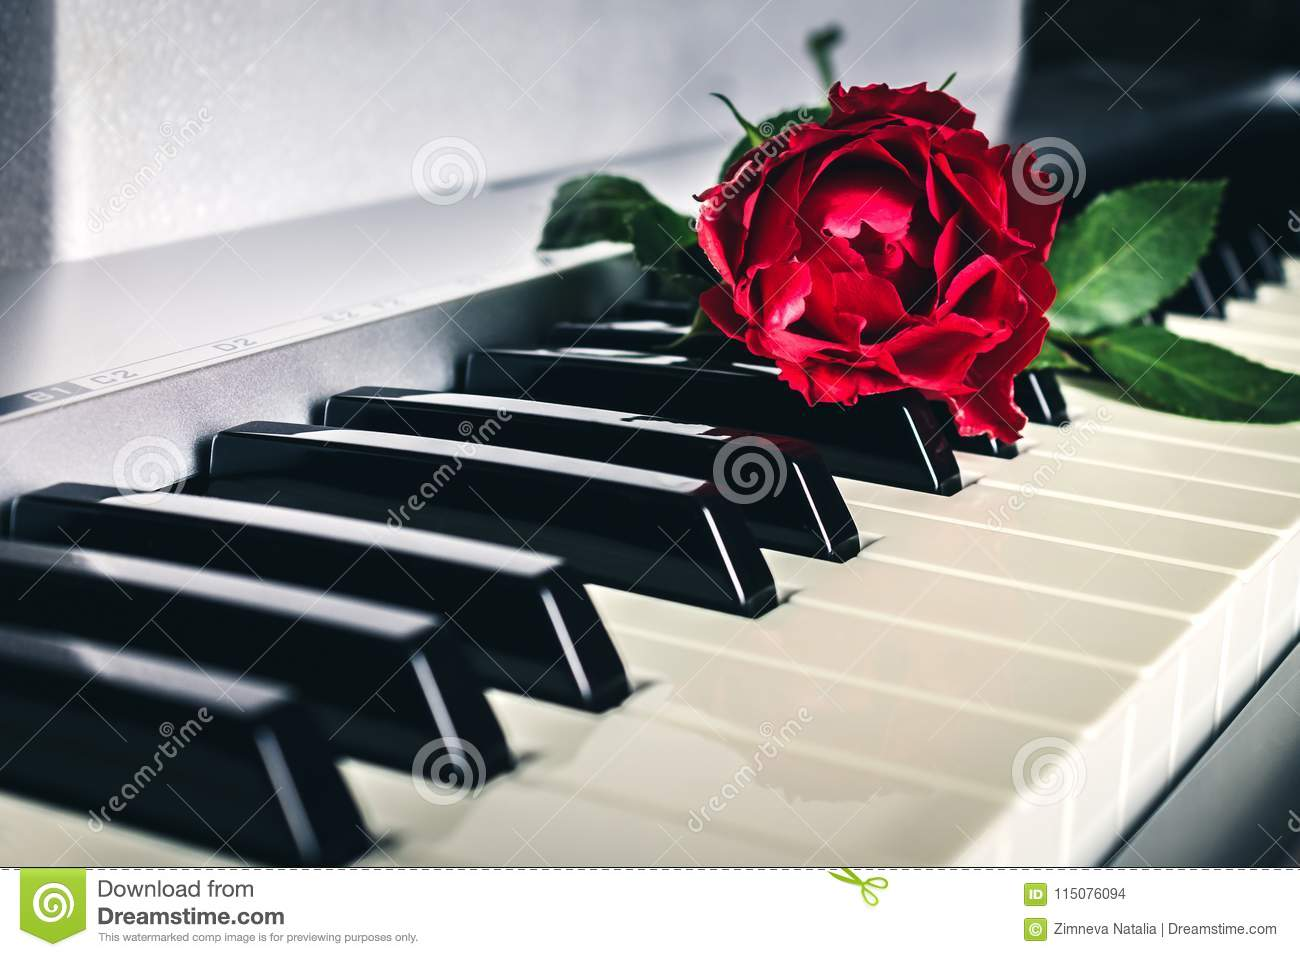 Red Rose On Keyboard Of The Digital Piano Stock Photo